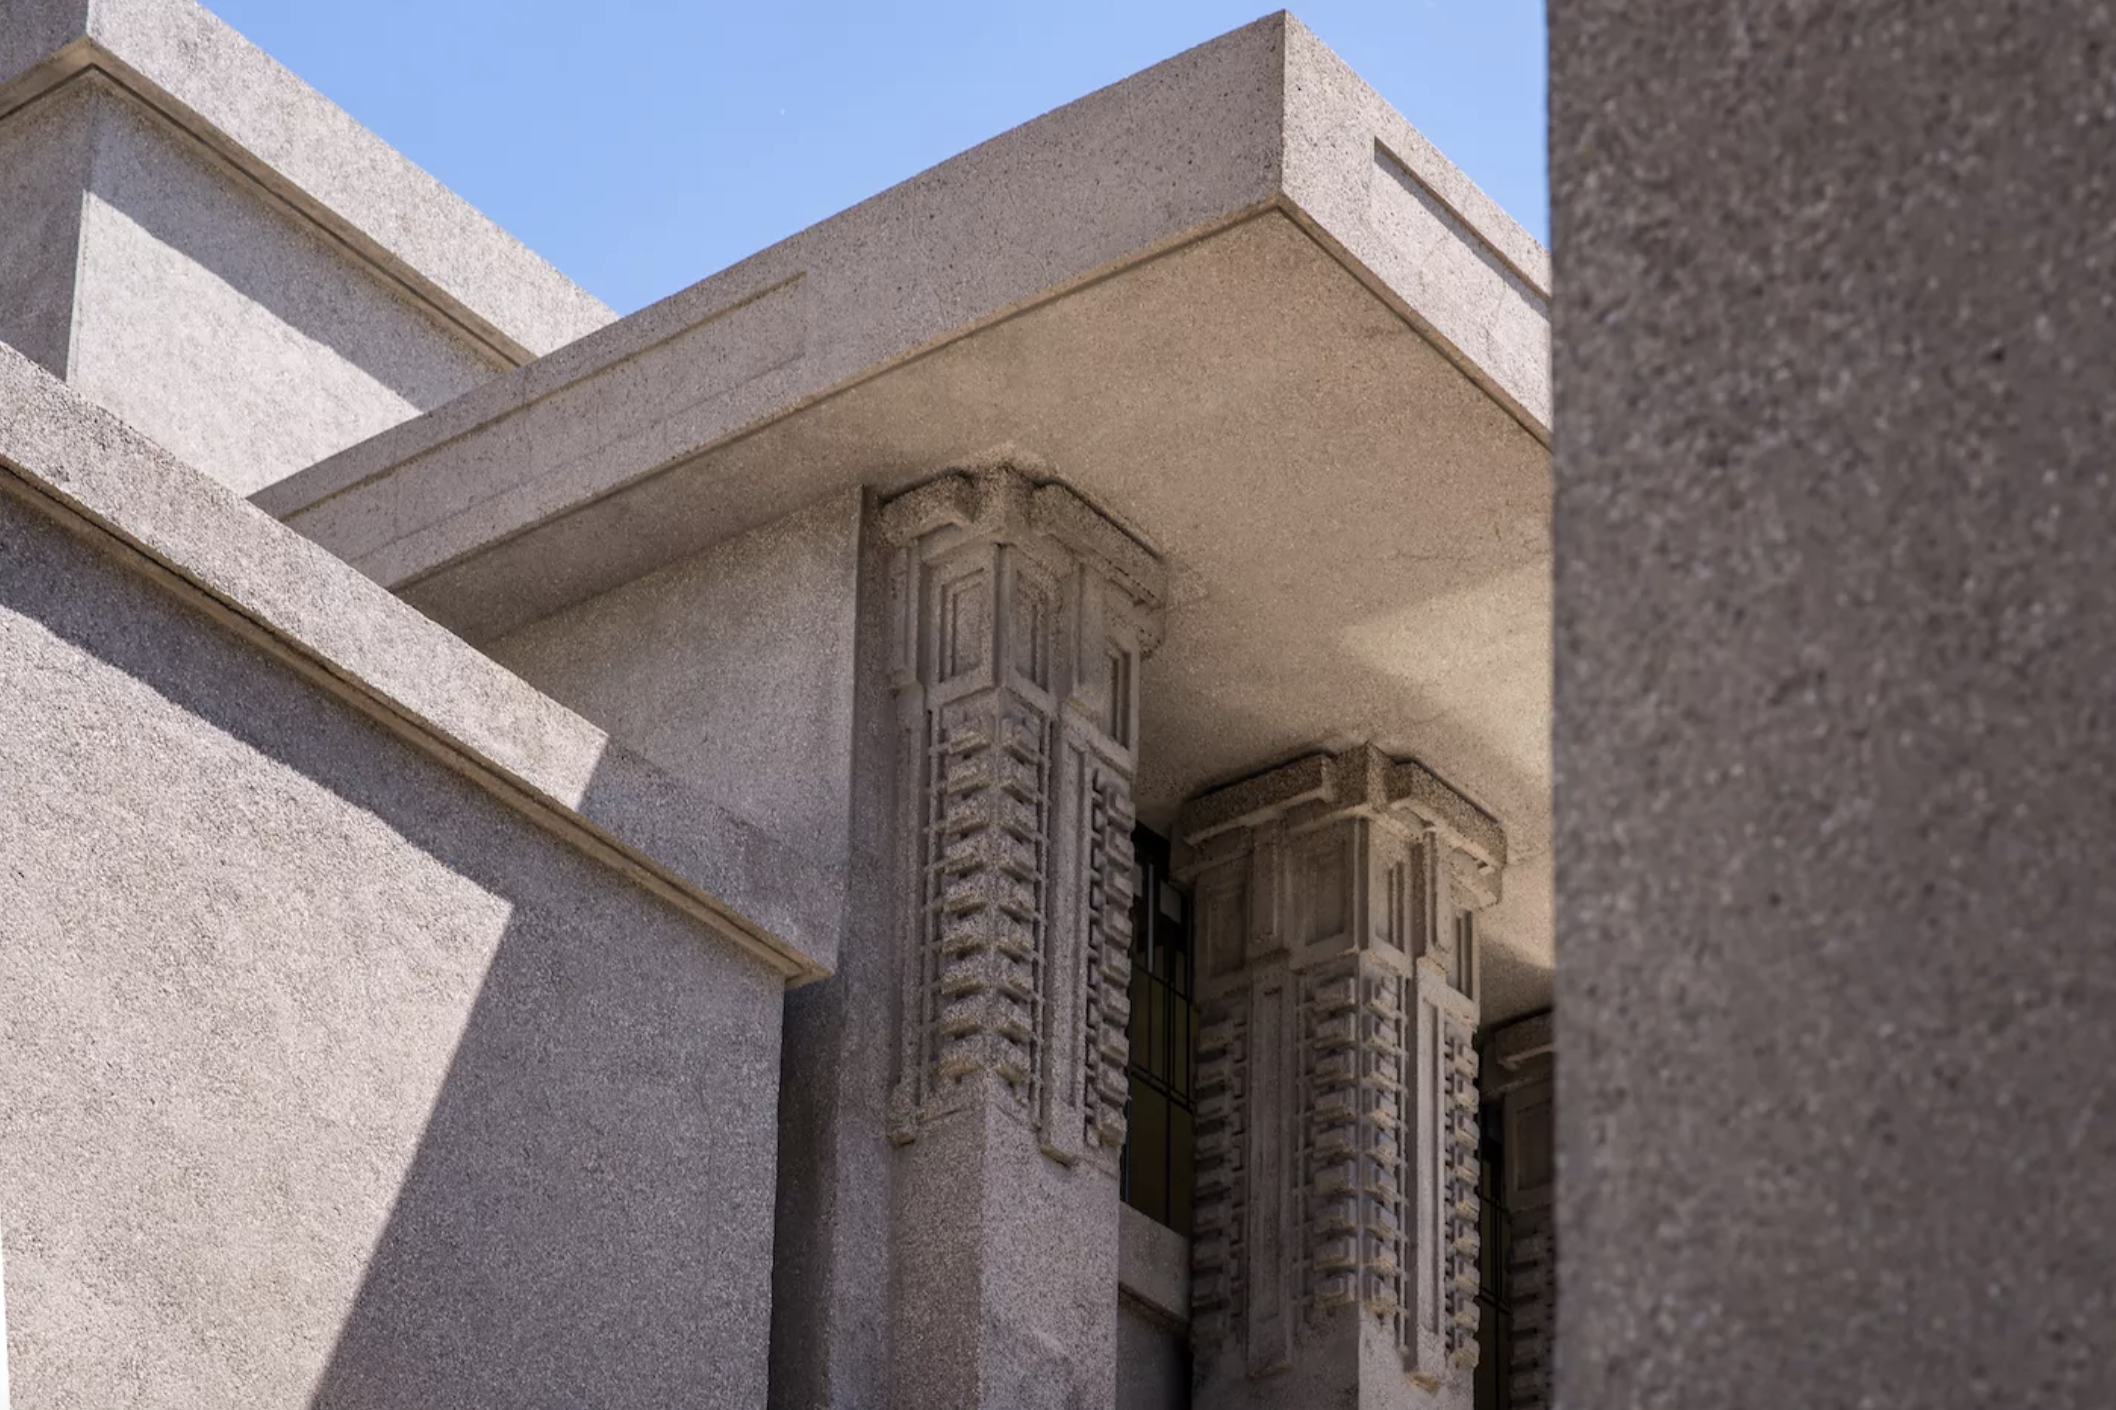 Unity Temple restoration wins national historic preservation award